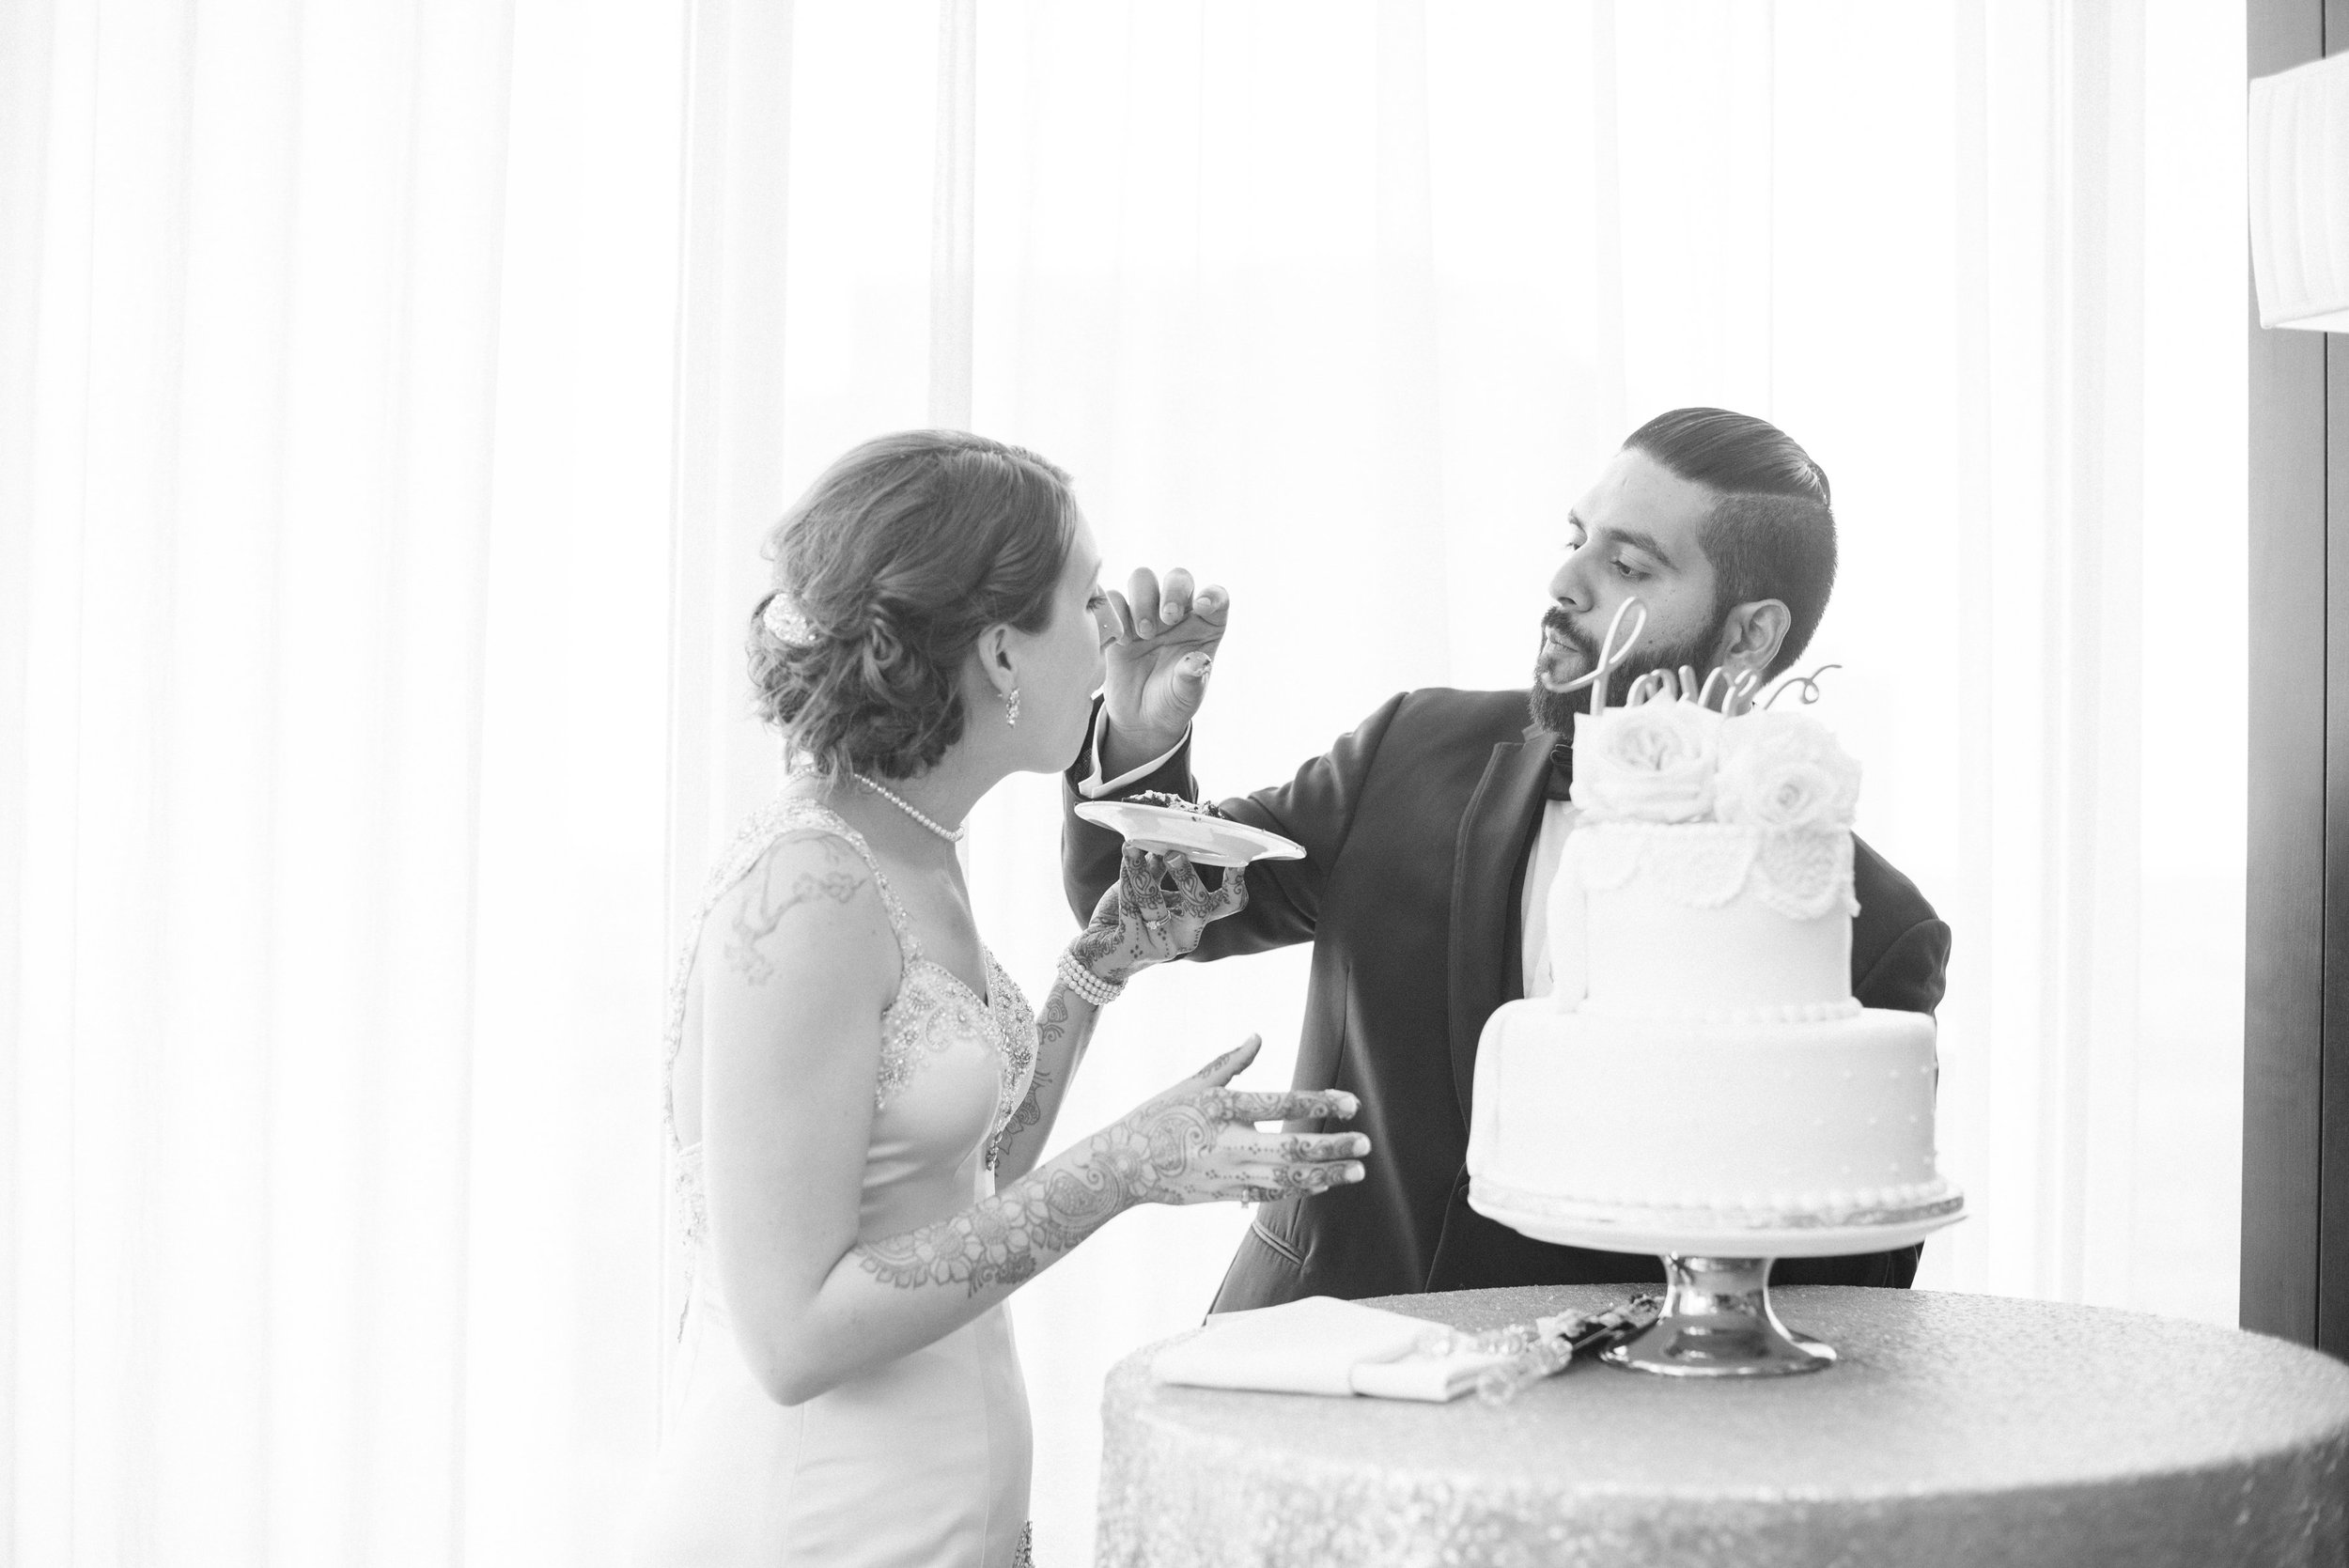 Photography: Kelly Brown Weddings |Planner: The Simply Elegant Group, Kerry  |Venue: Millennium Hotel Mpls |Stationary: Minted |DJ: Instant Request | Florals: Sadie's Floral | Linens/Rentals  Linen Effects & Avant | Hair: 139 Hair by Heidi | Bakery: Queen of Cakes